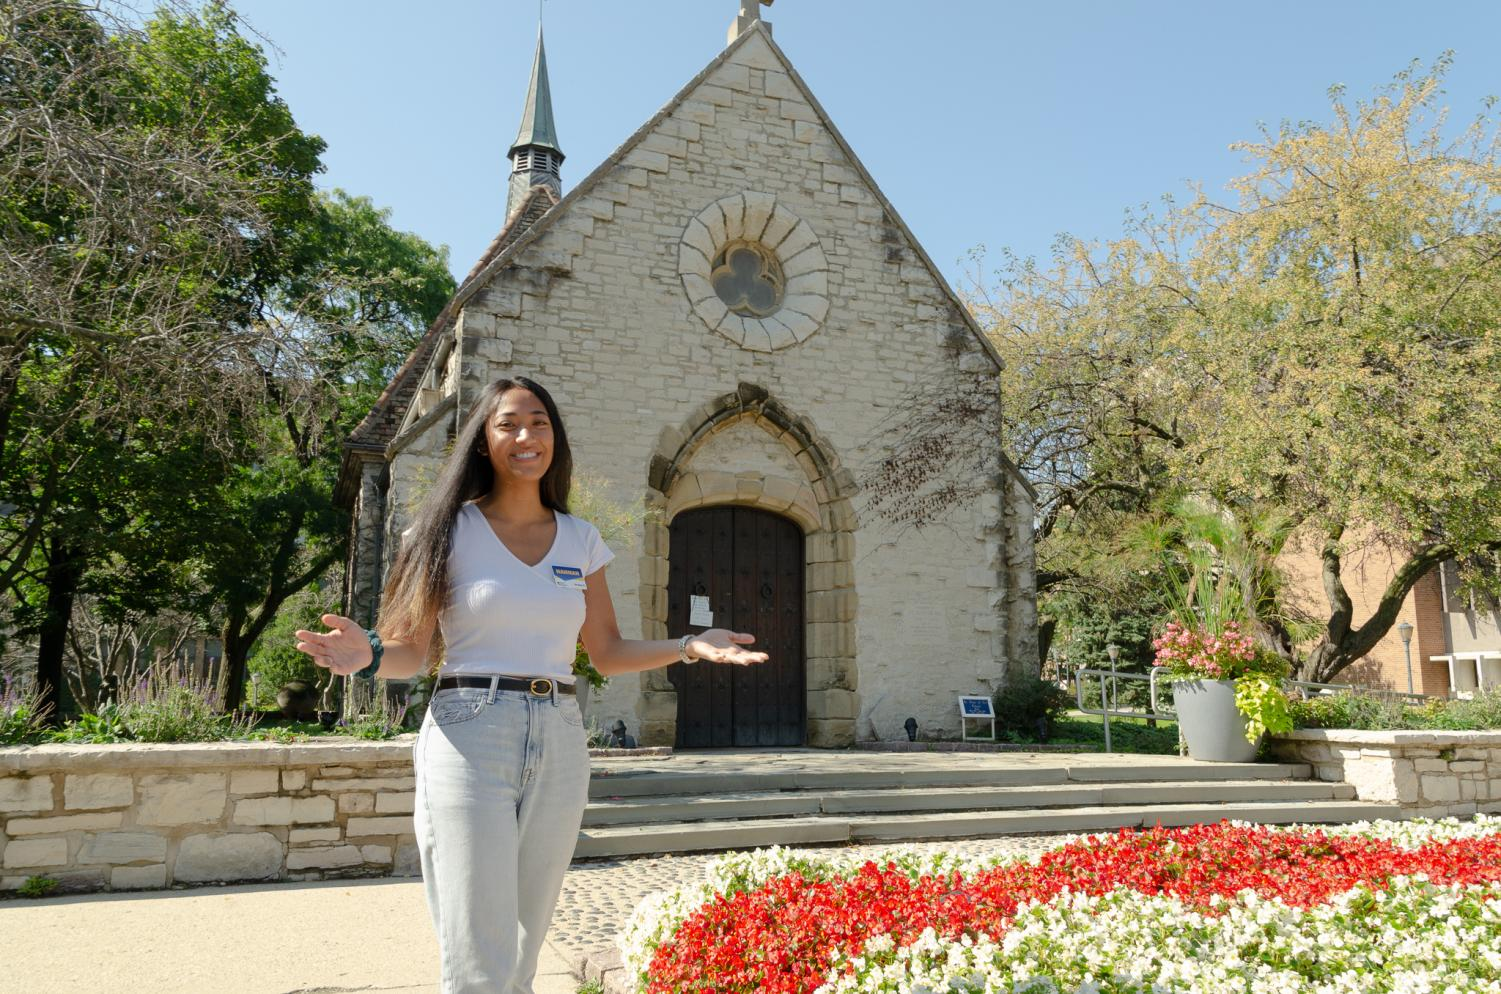 Hannah Quijano is a tour guide on campus. She leads a group to the St. Joan of Arc Chapel.